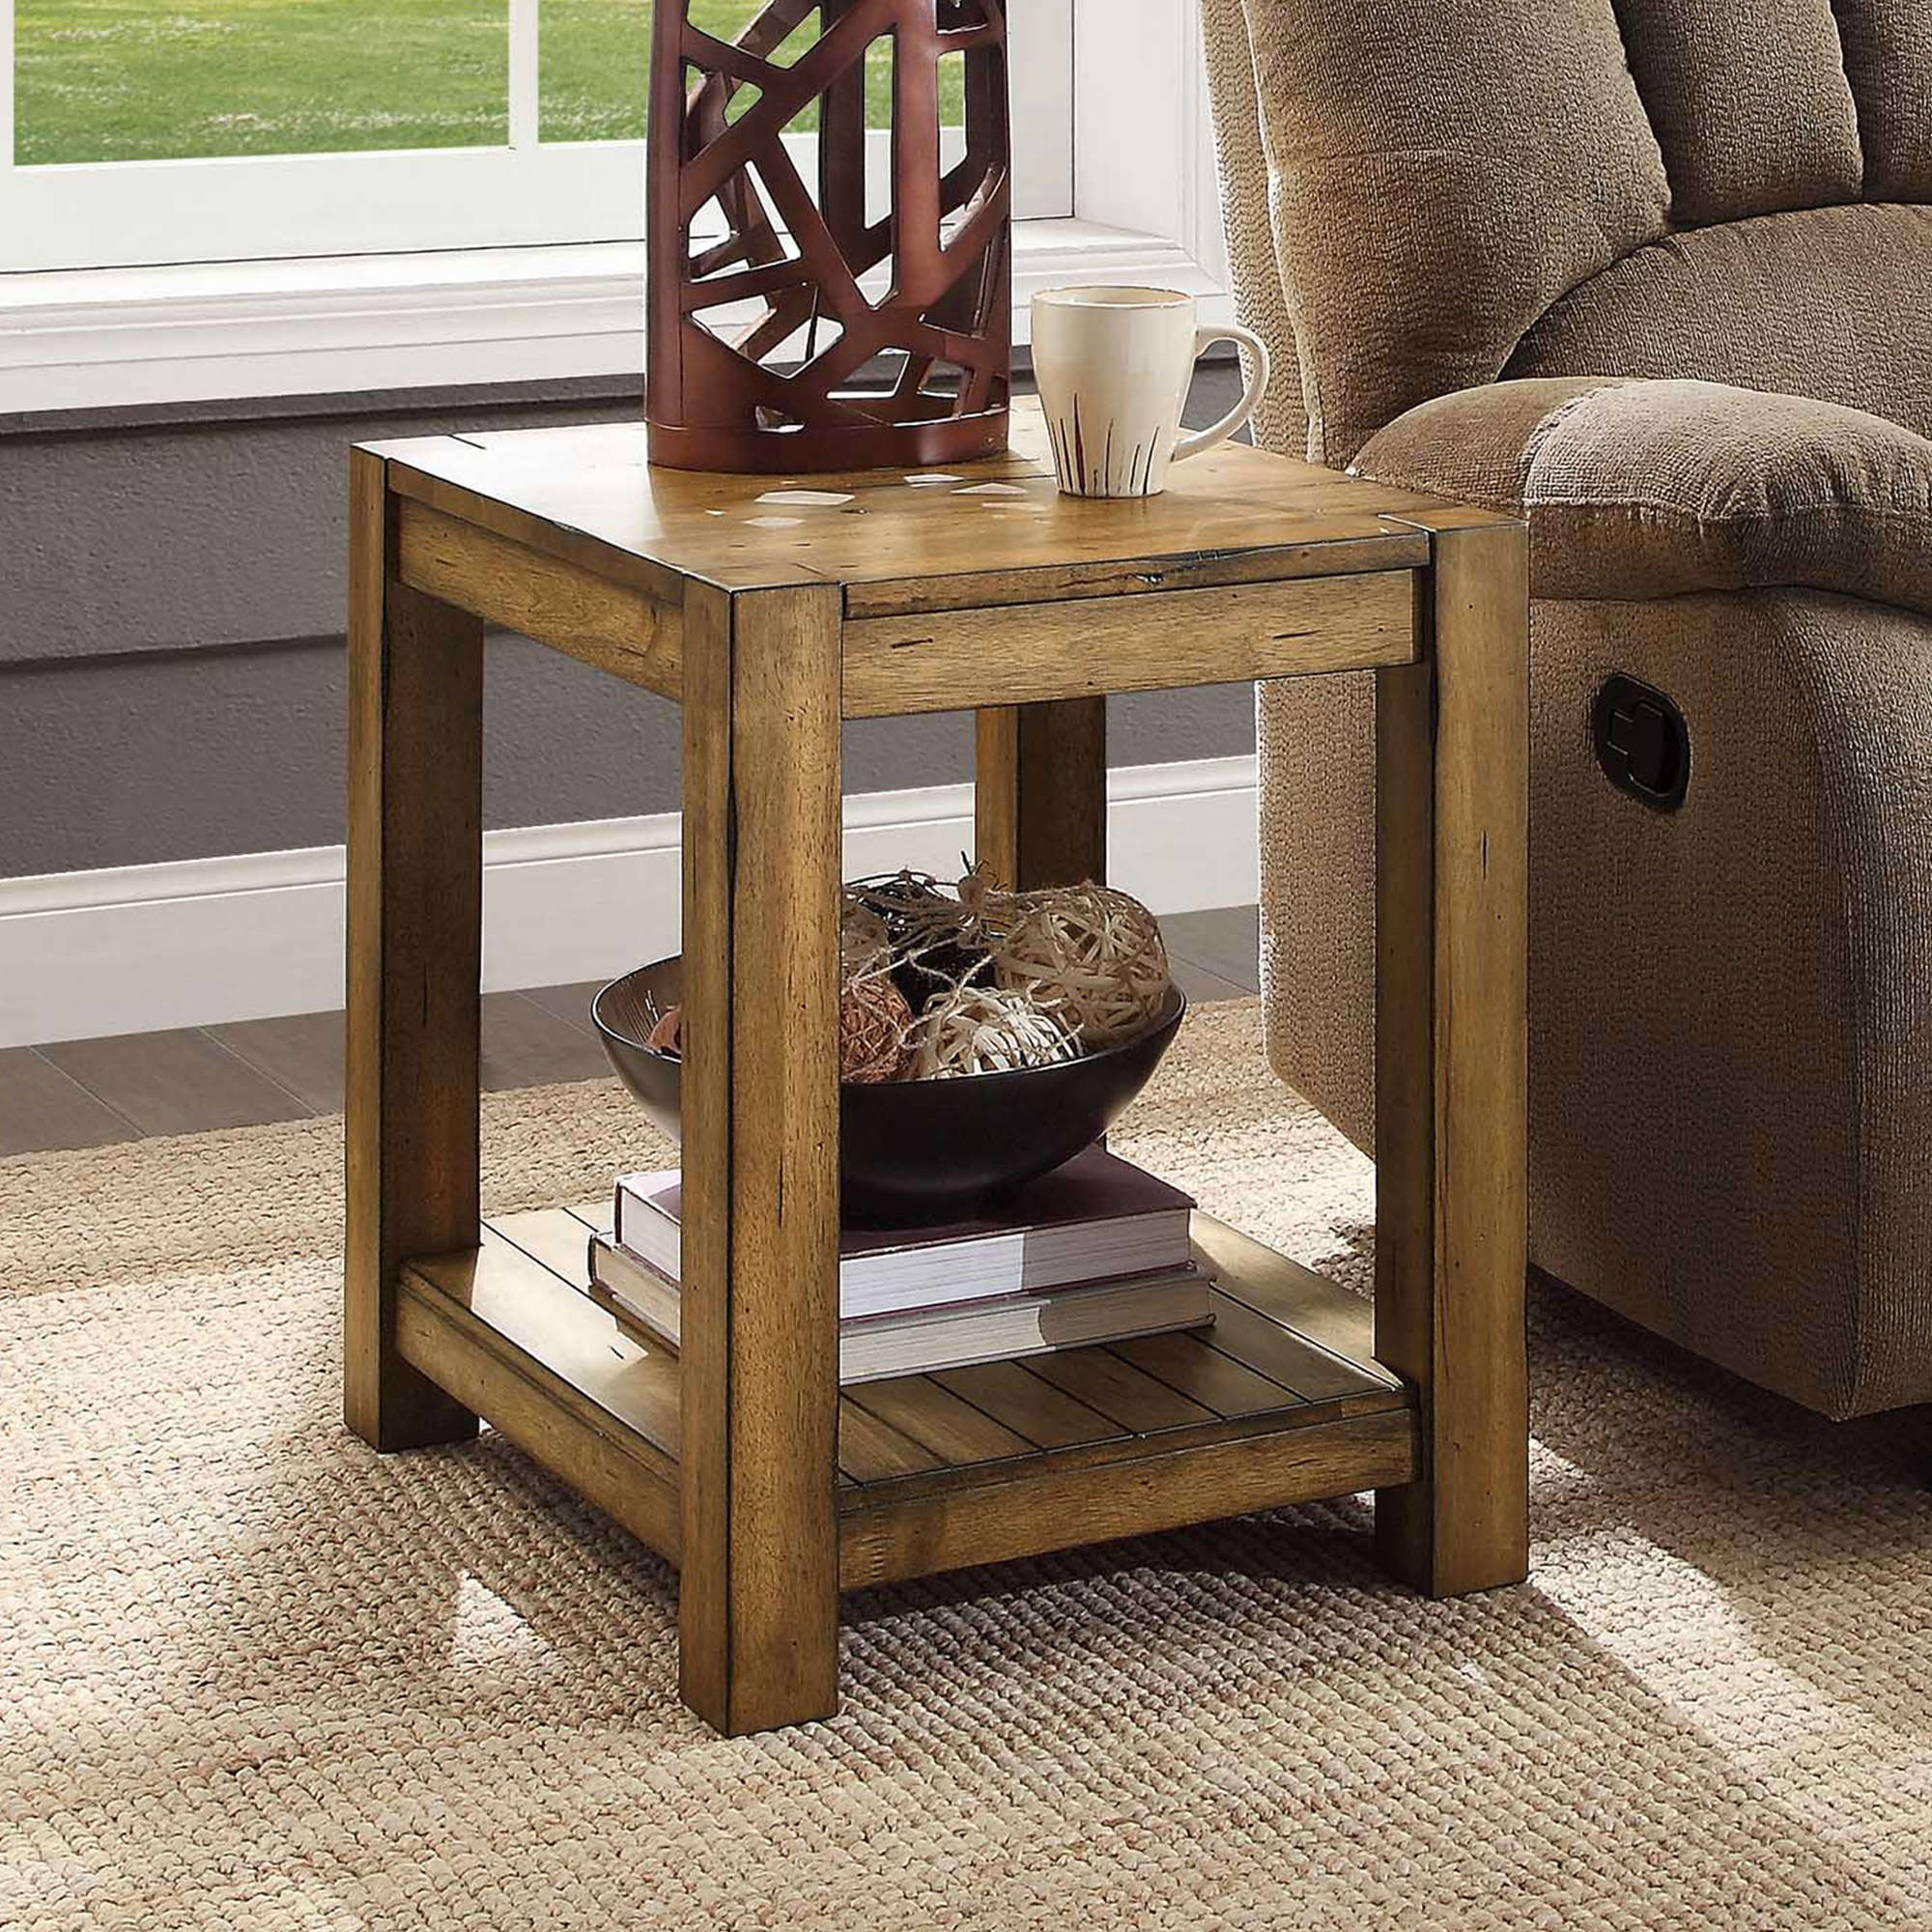 Better Homes & Gardens Bryant End Table, Rustic Maple Brown Finish by WHALEN LIMITED